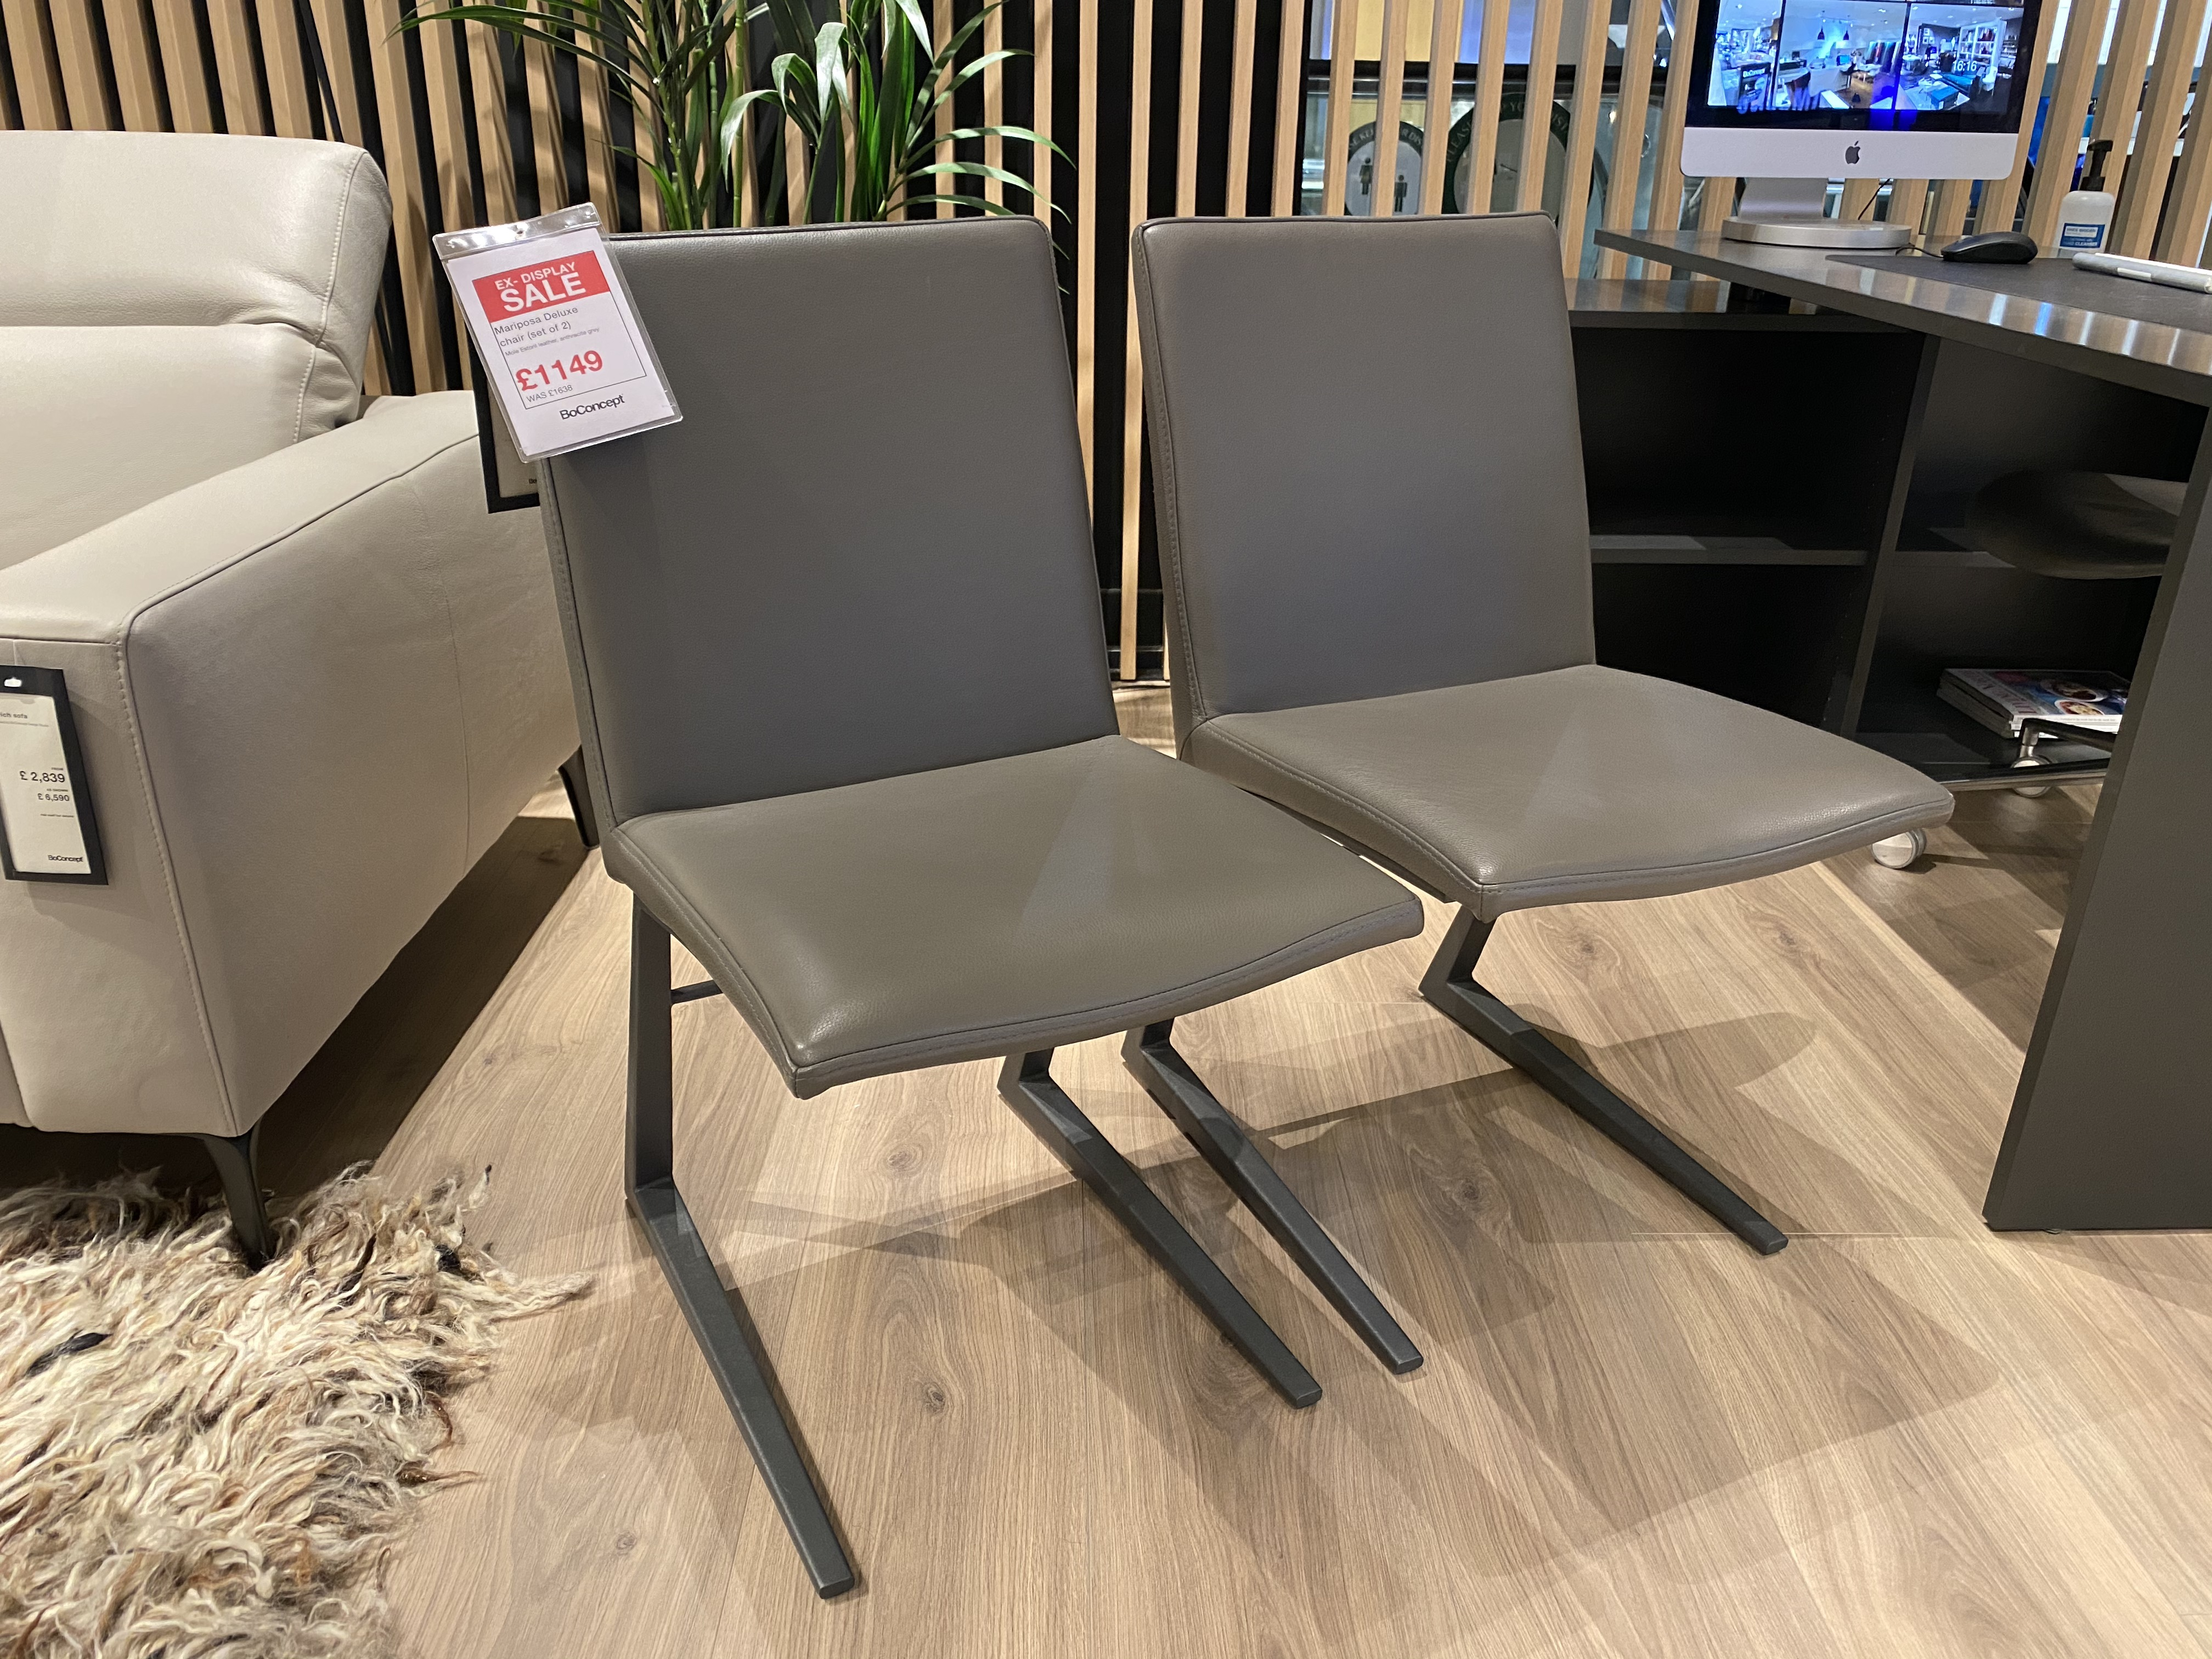 Set of 2 Mariposa dining chairs